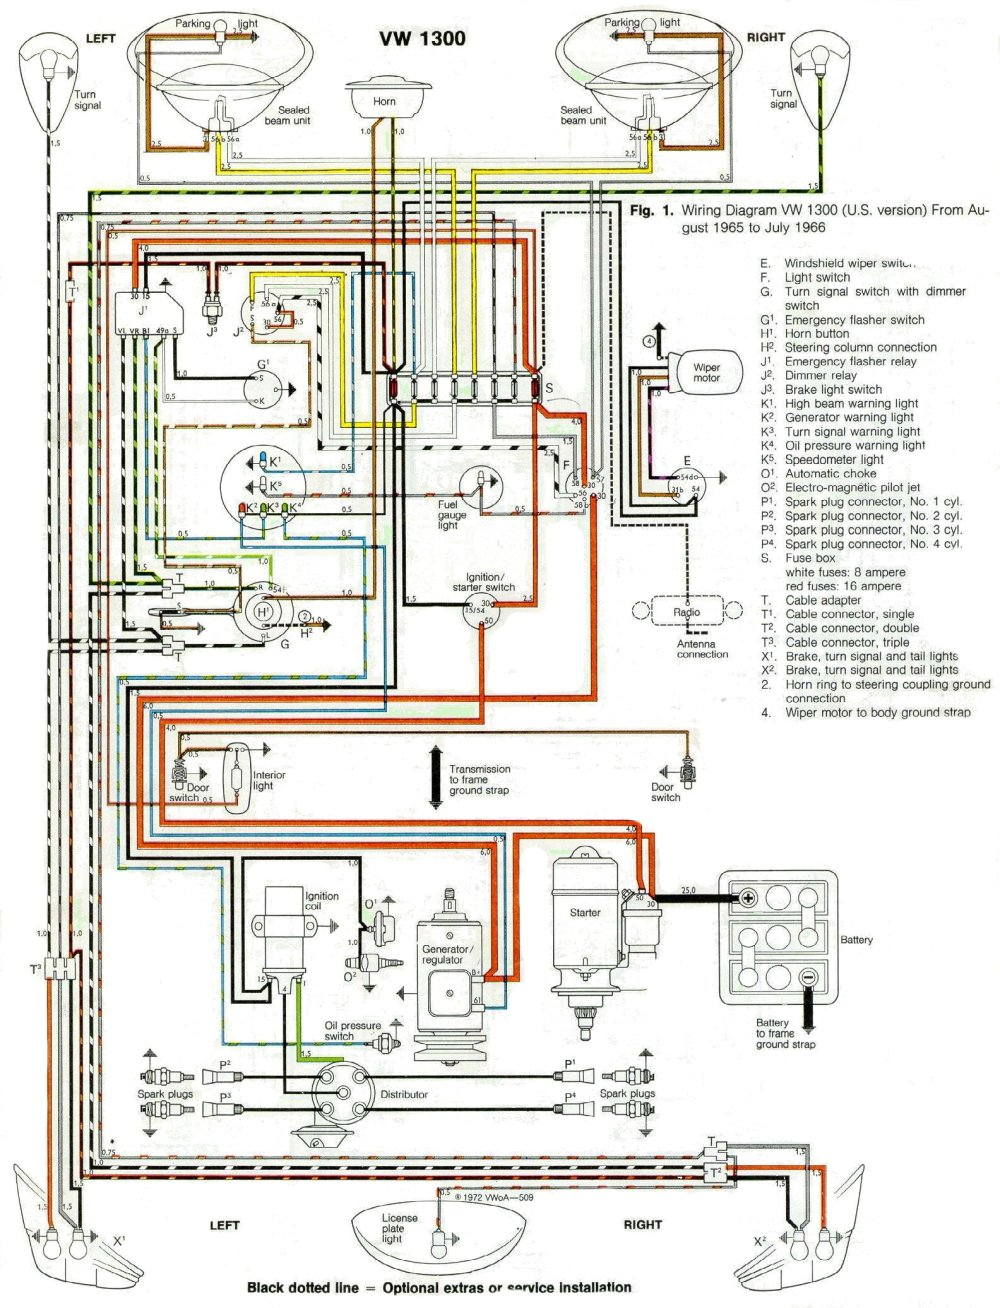 medium resolution of 1966 wiring diagram vw beetle engine tuning vw beetle wiring